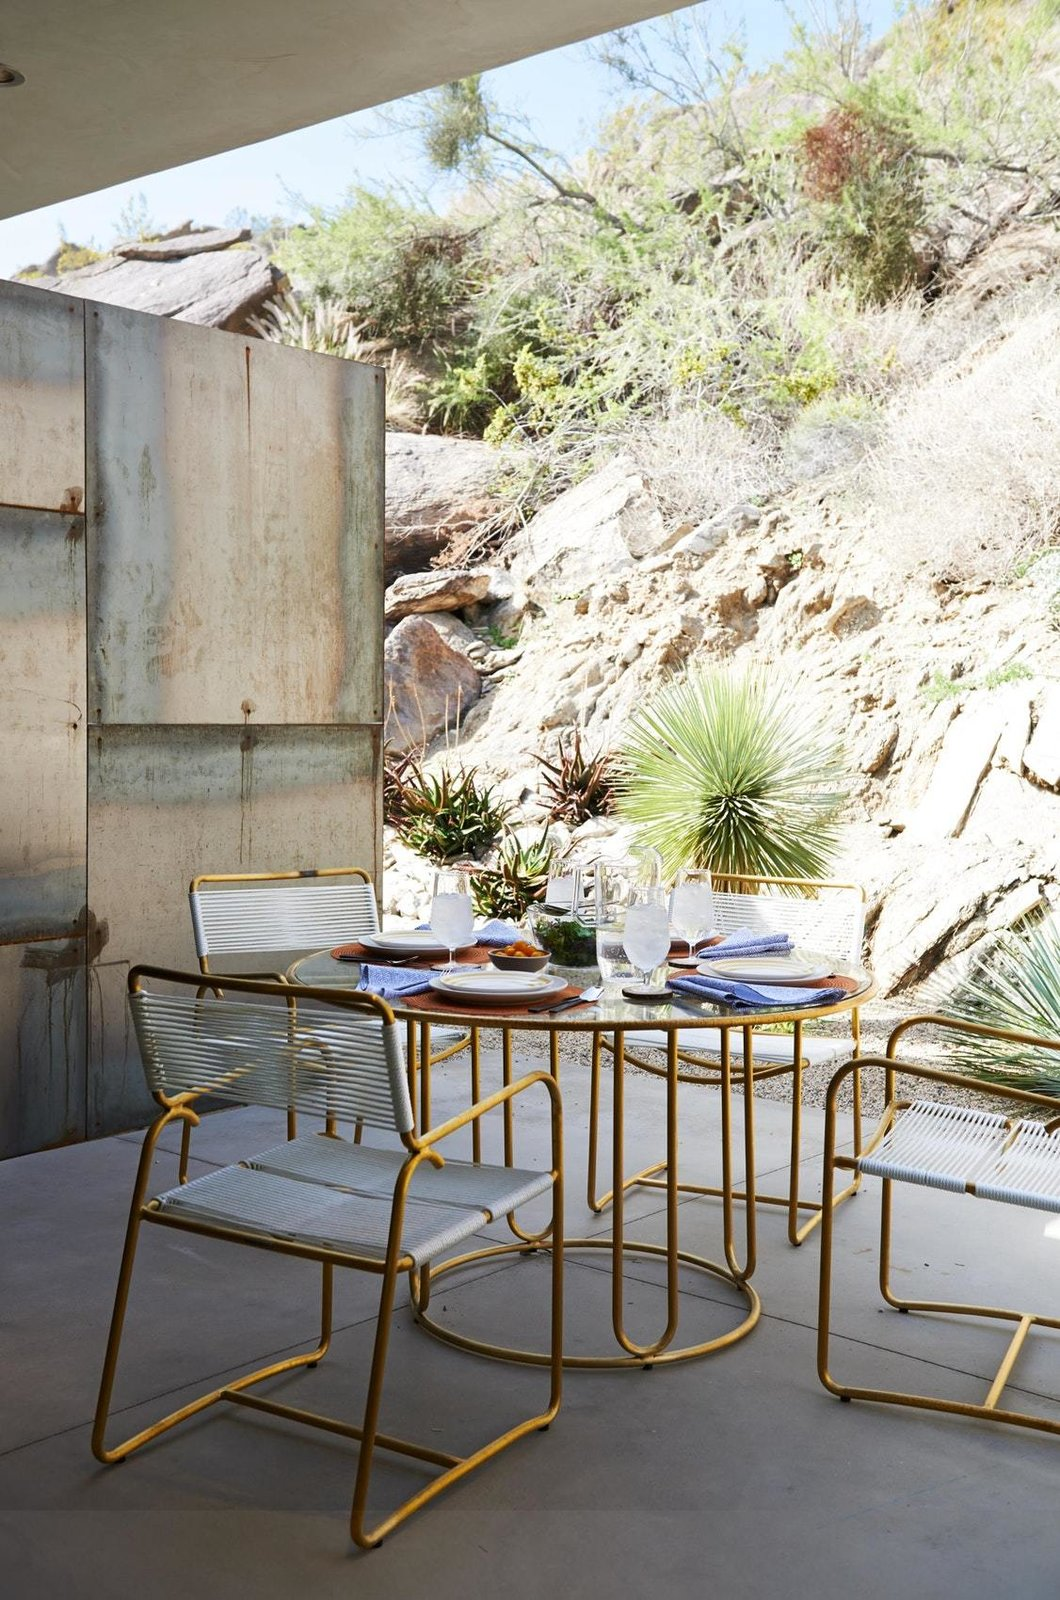 Outdoor, Boulders, Desert, Concrete Patio, Porch, Deck, and Side Yard  On the Rocks